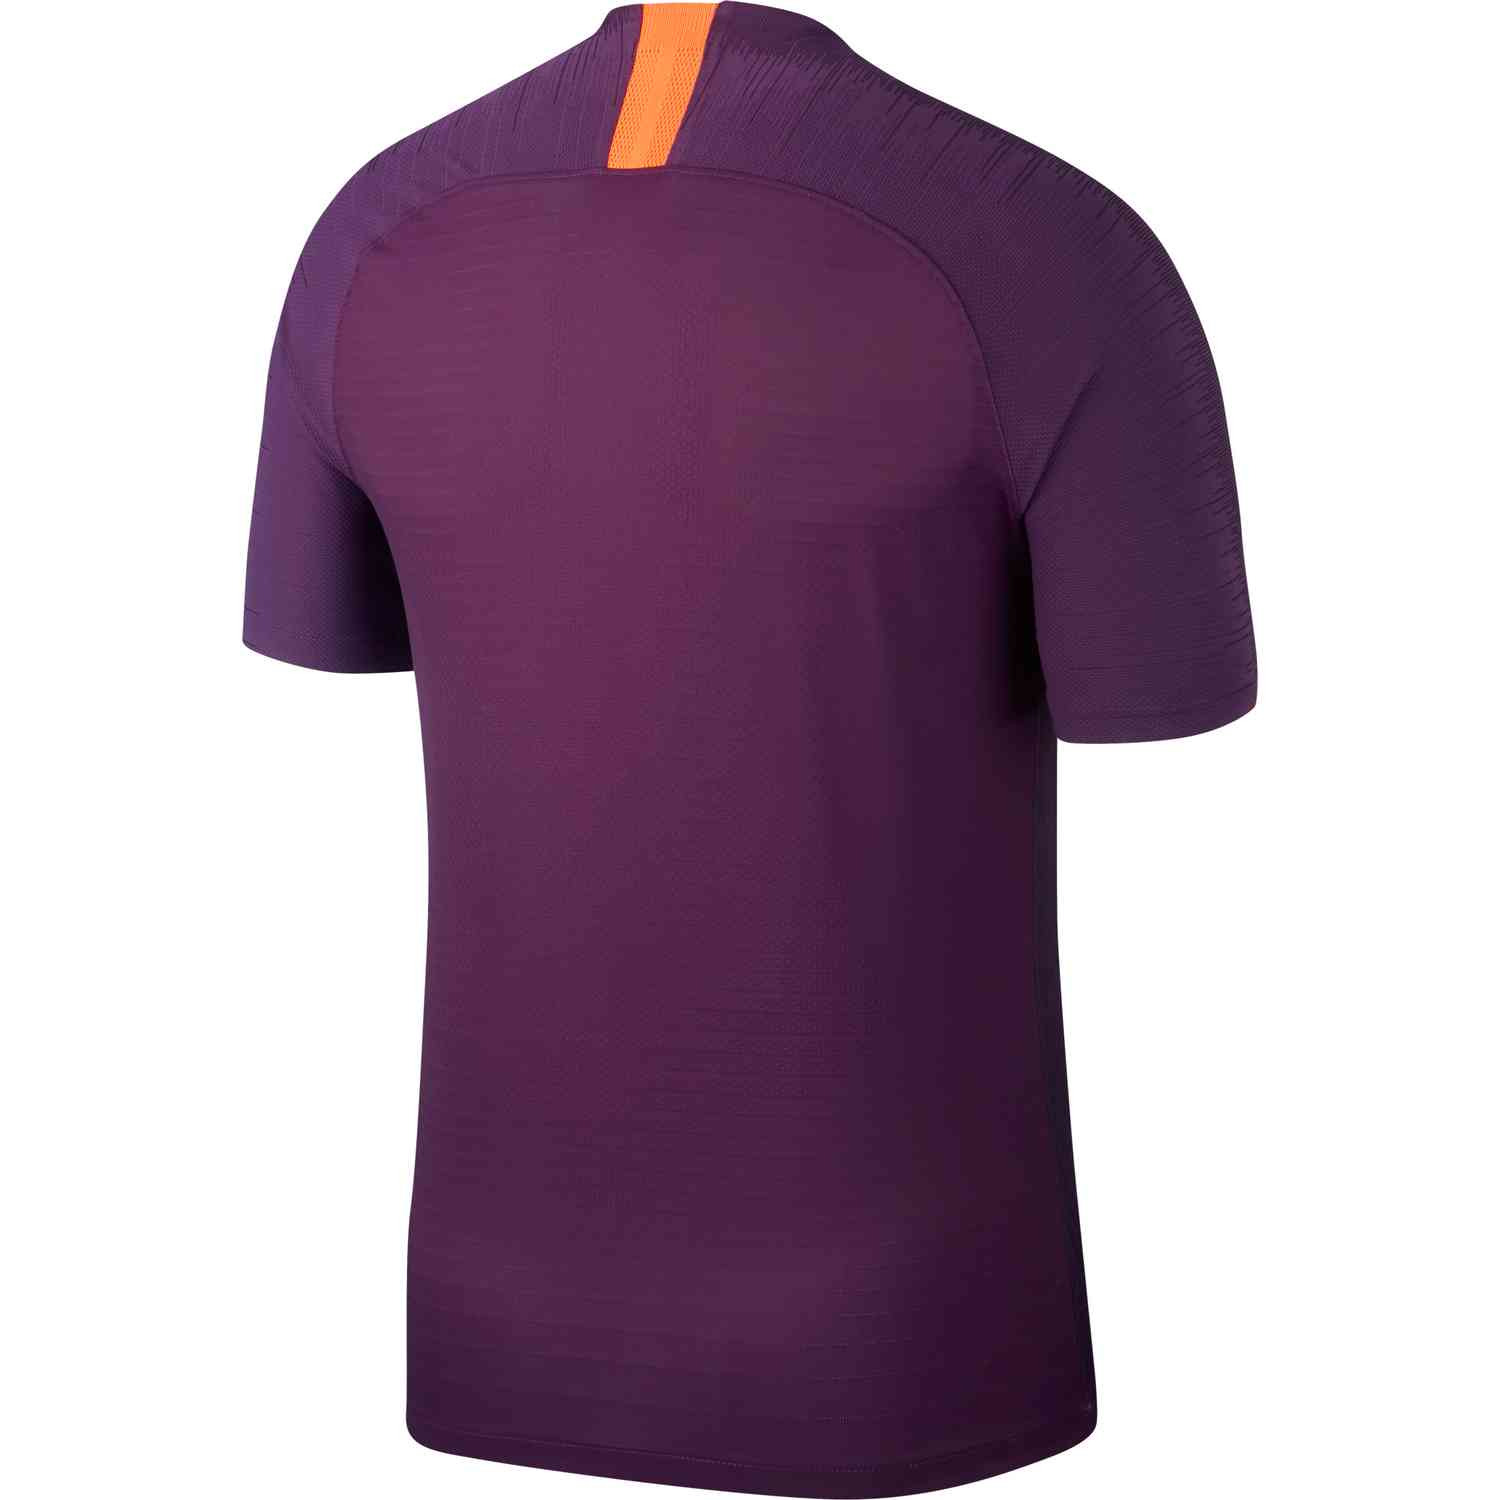 new products e75cb f647e Nike Manchester City 3rd Match Jersey - Night Purple - Soccer ...